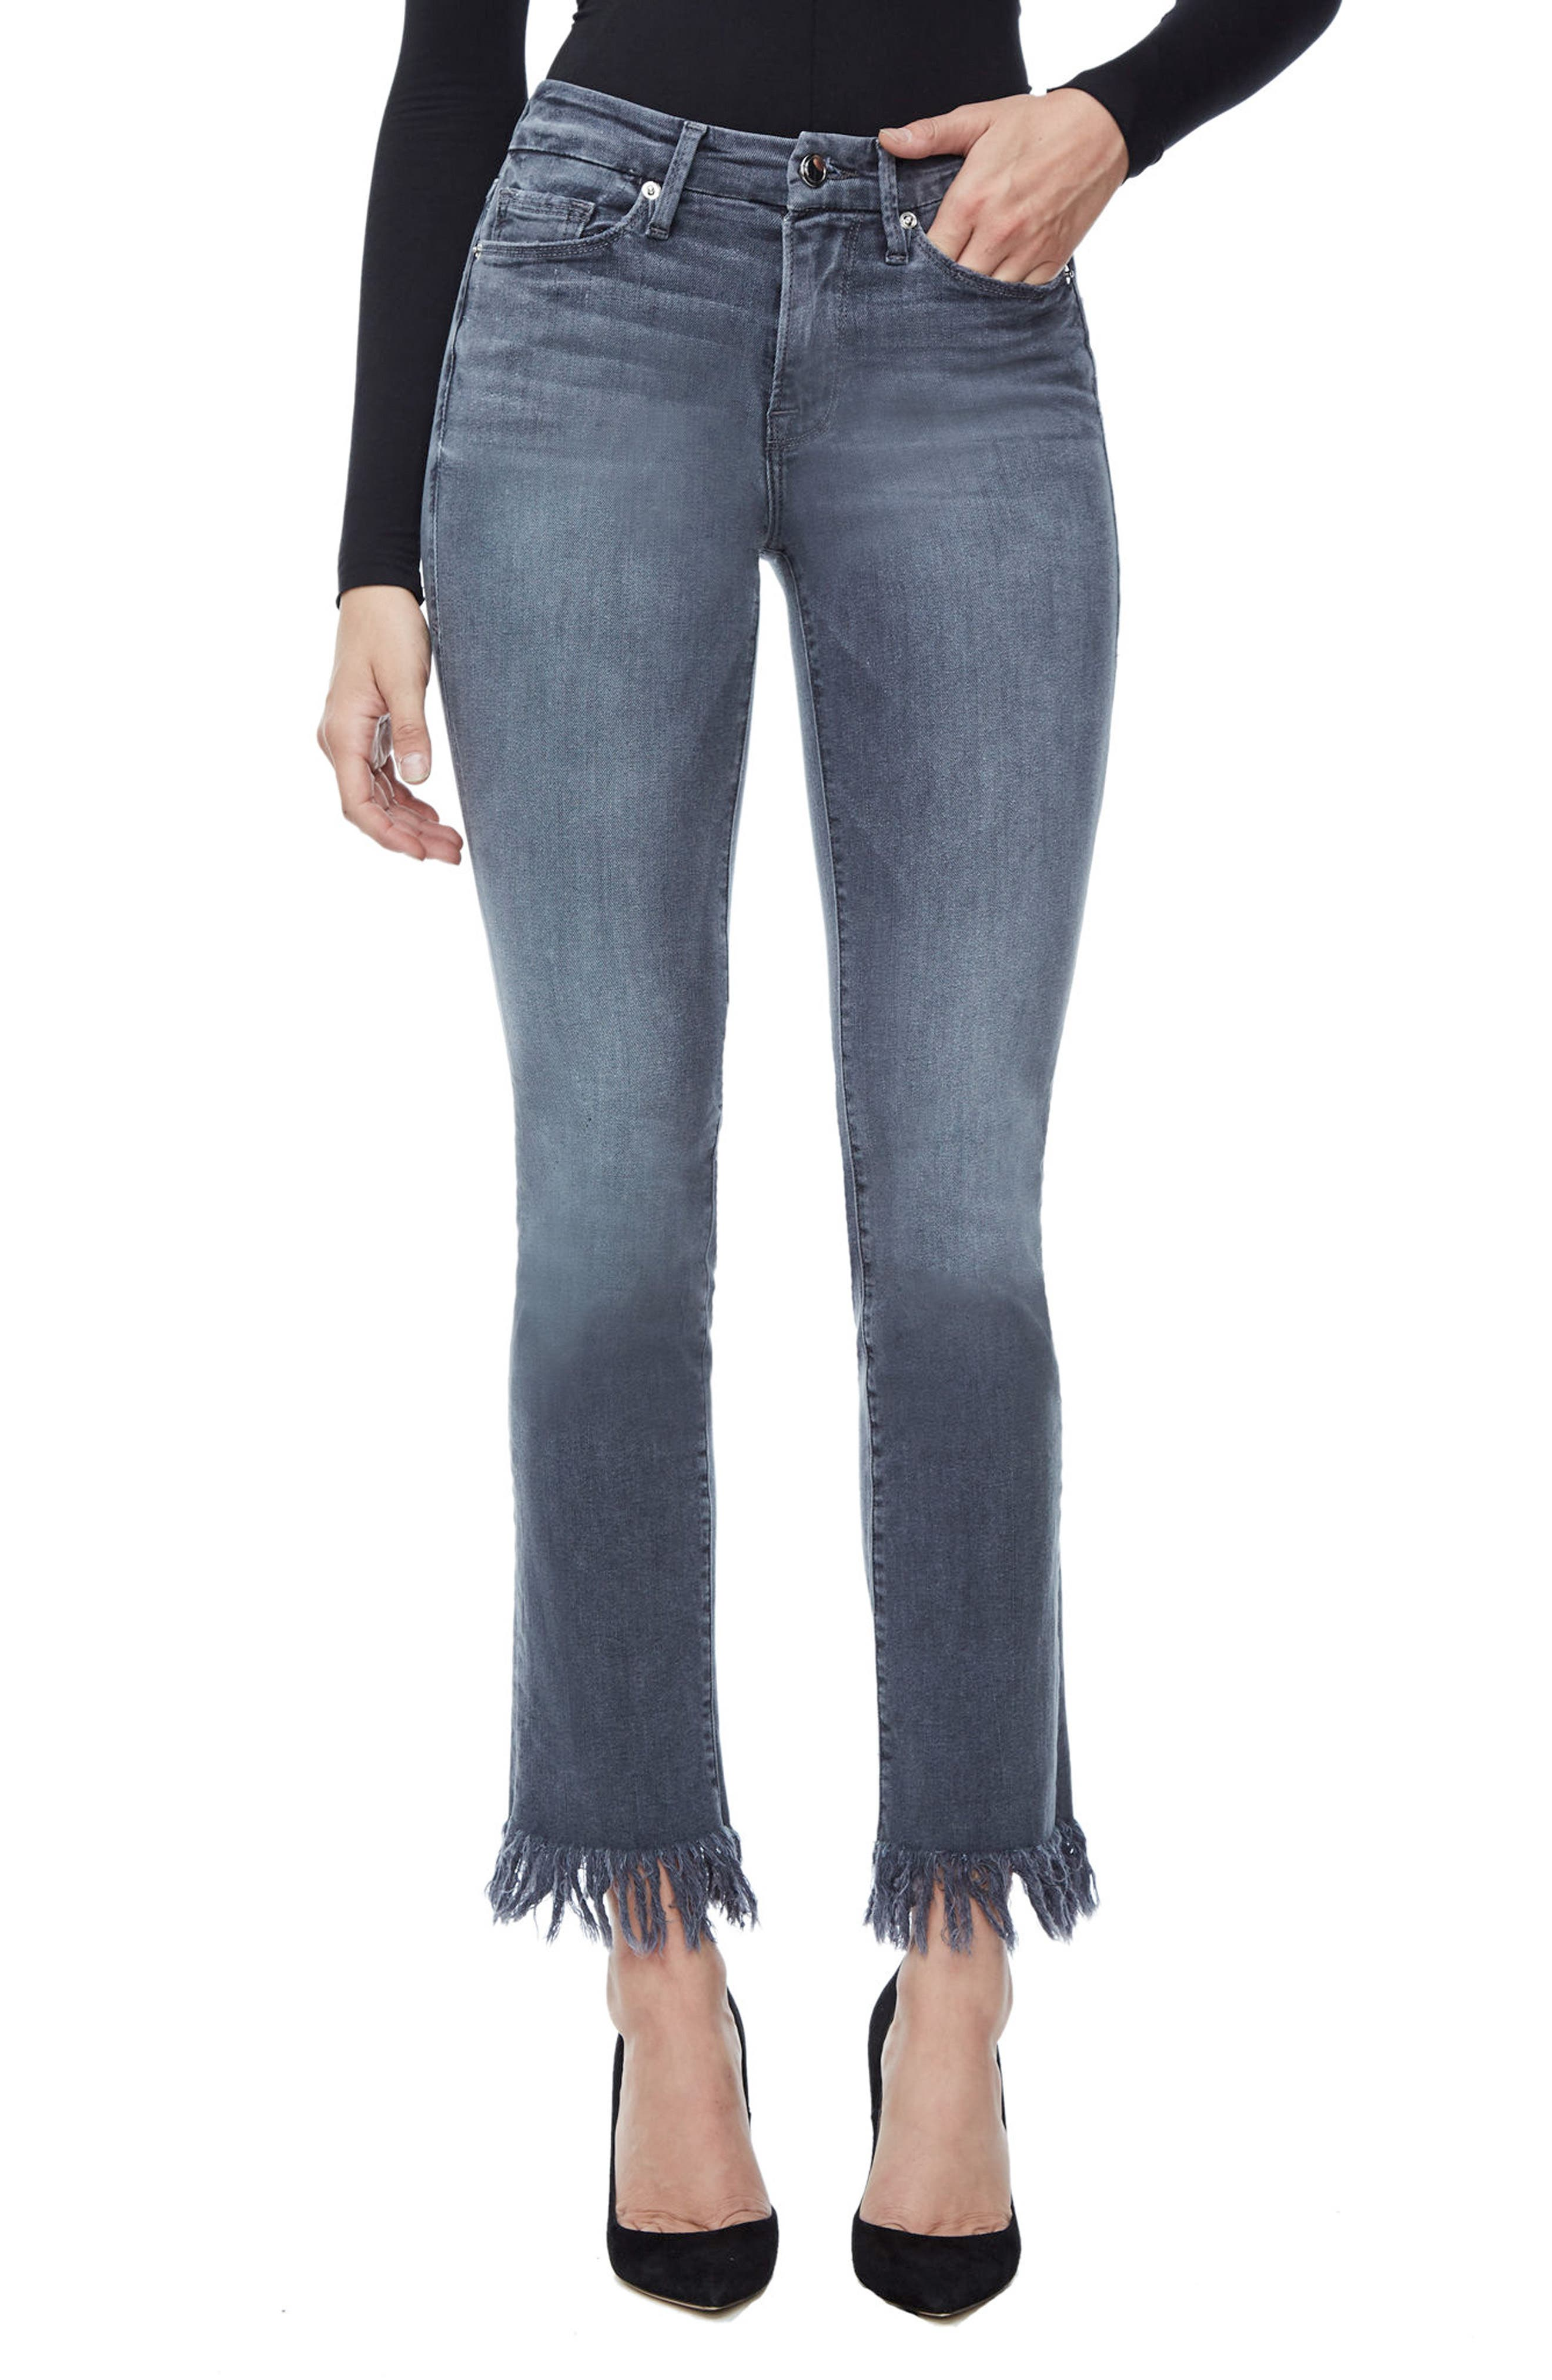 Alternate Image 1 Selected - Good American Good Straight Crop Straight Leg Jeans (Grey 001) (Extended Sizes)